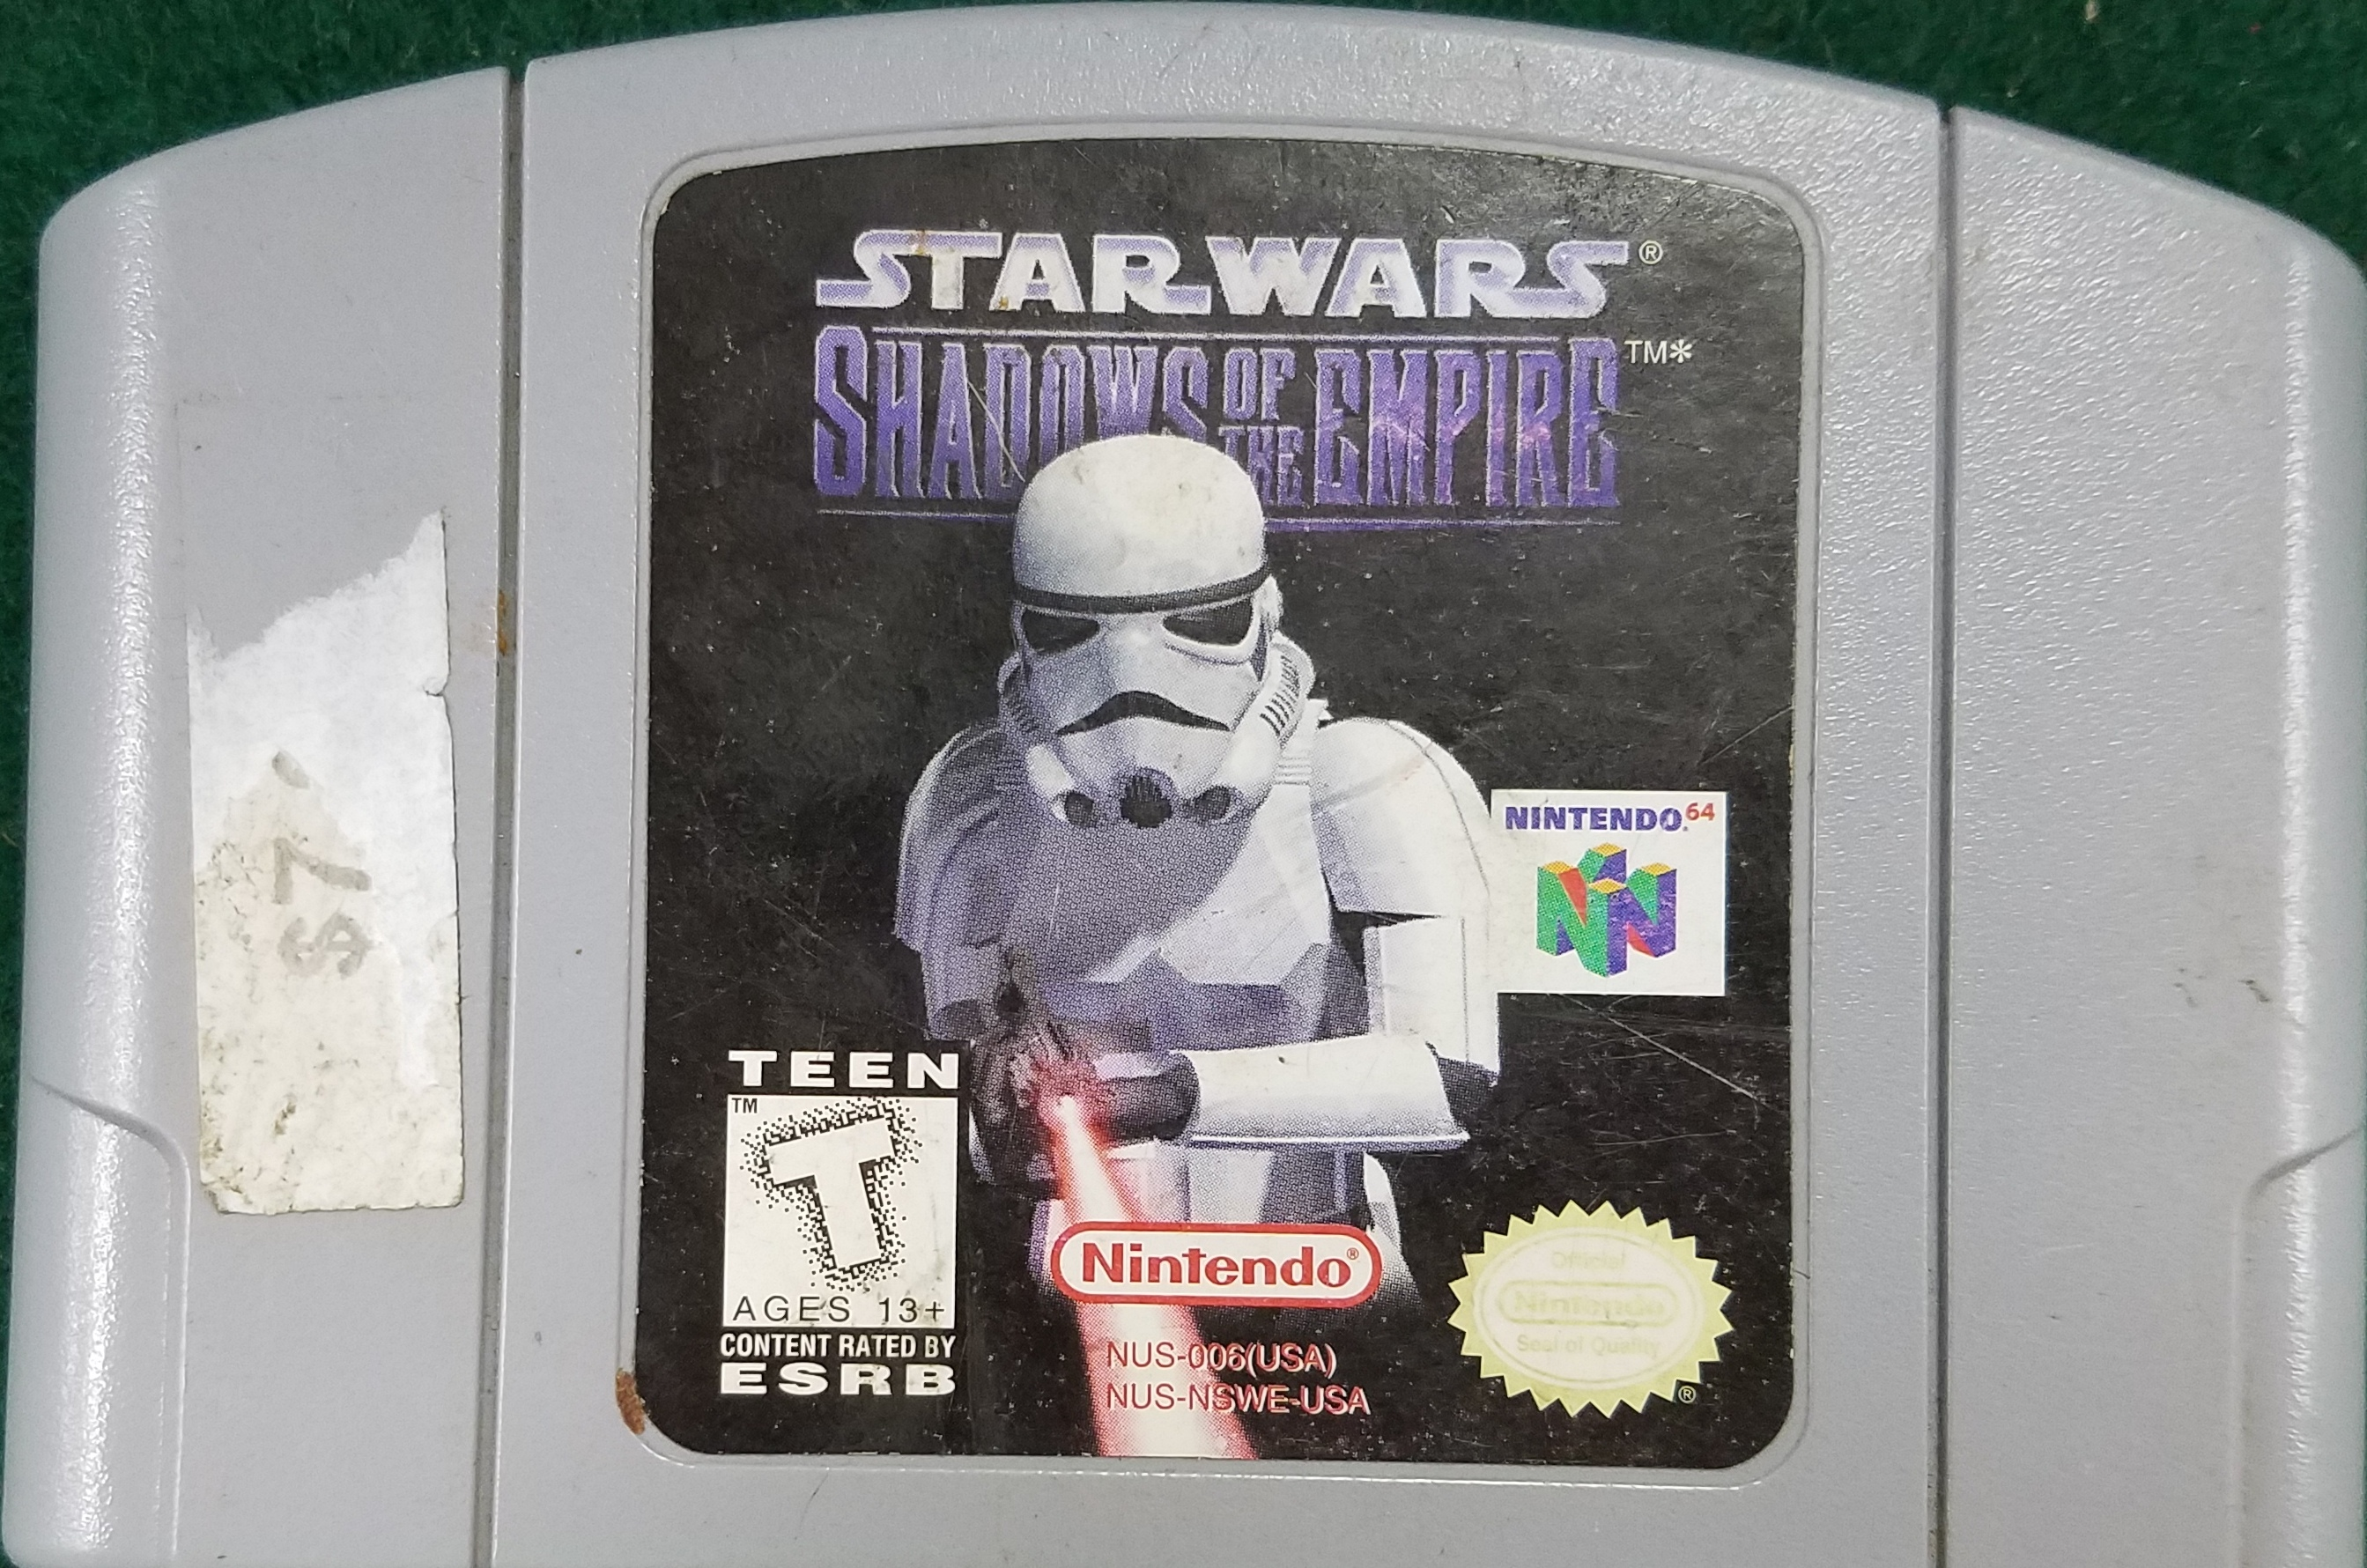 NINTENDO 64 STAR WARS GAME